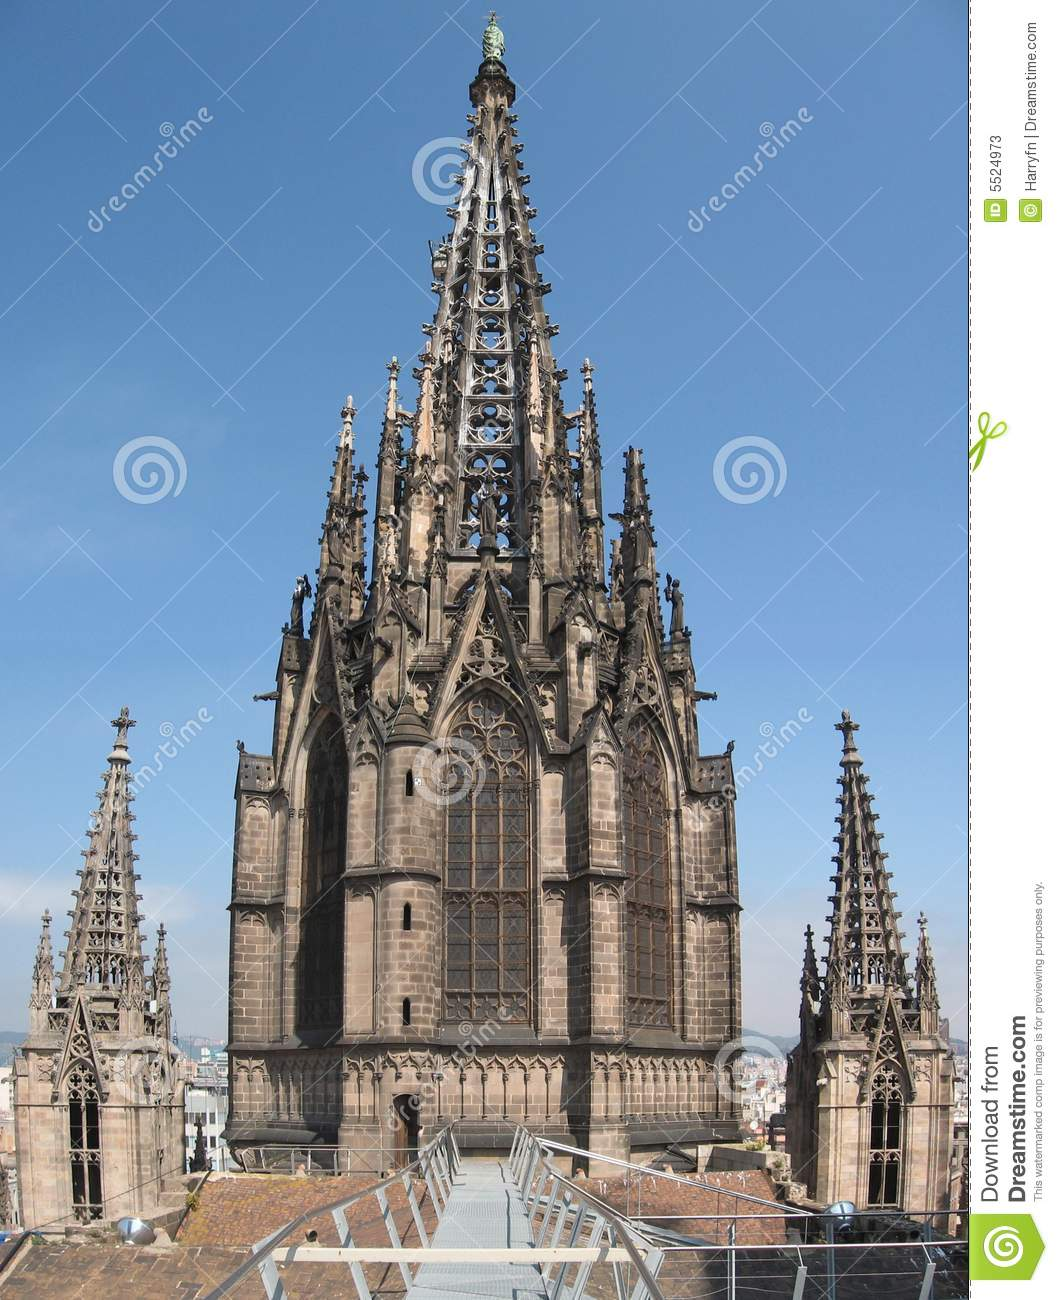 Barcelona Spain Stock Image Image Of Roof Blue Tall